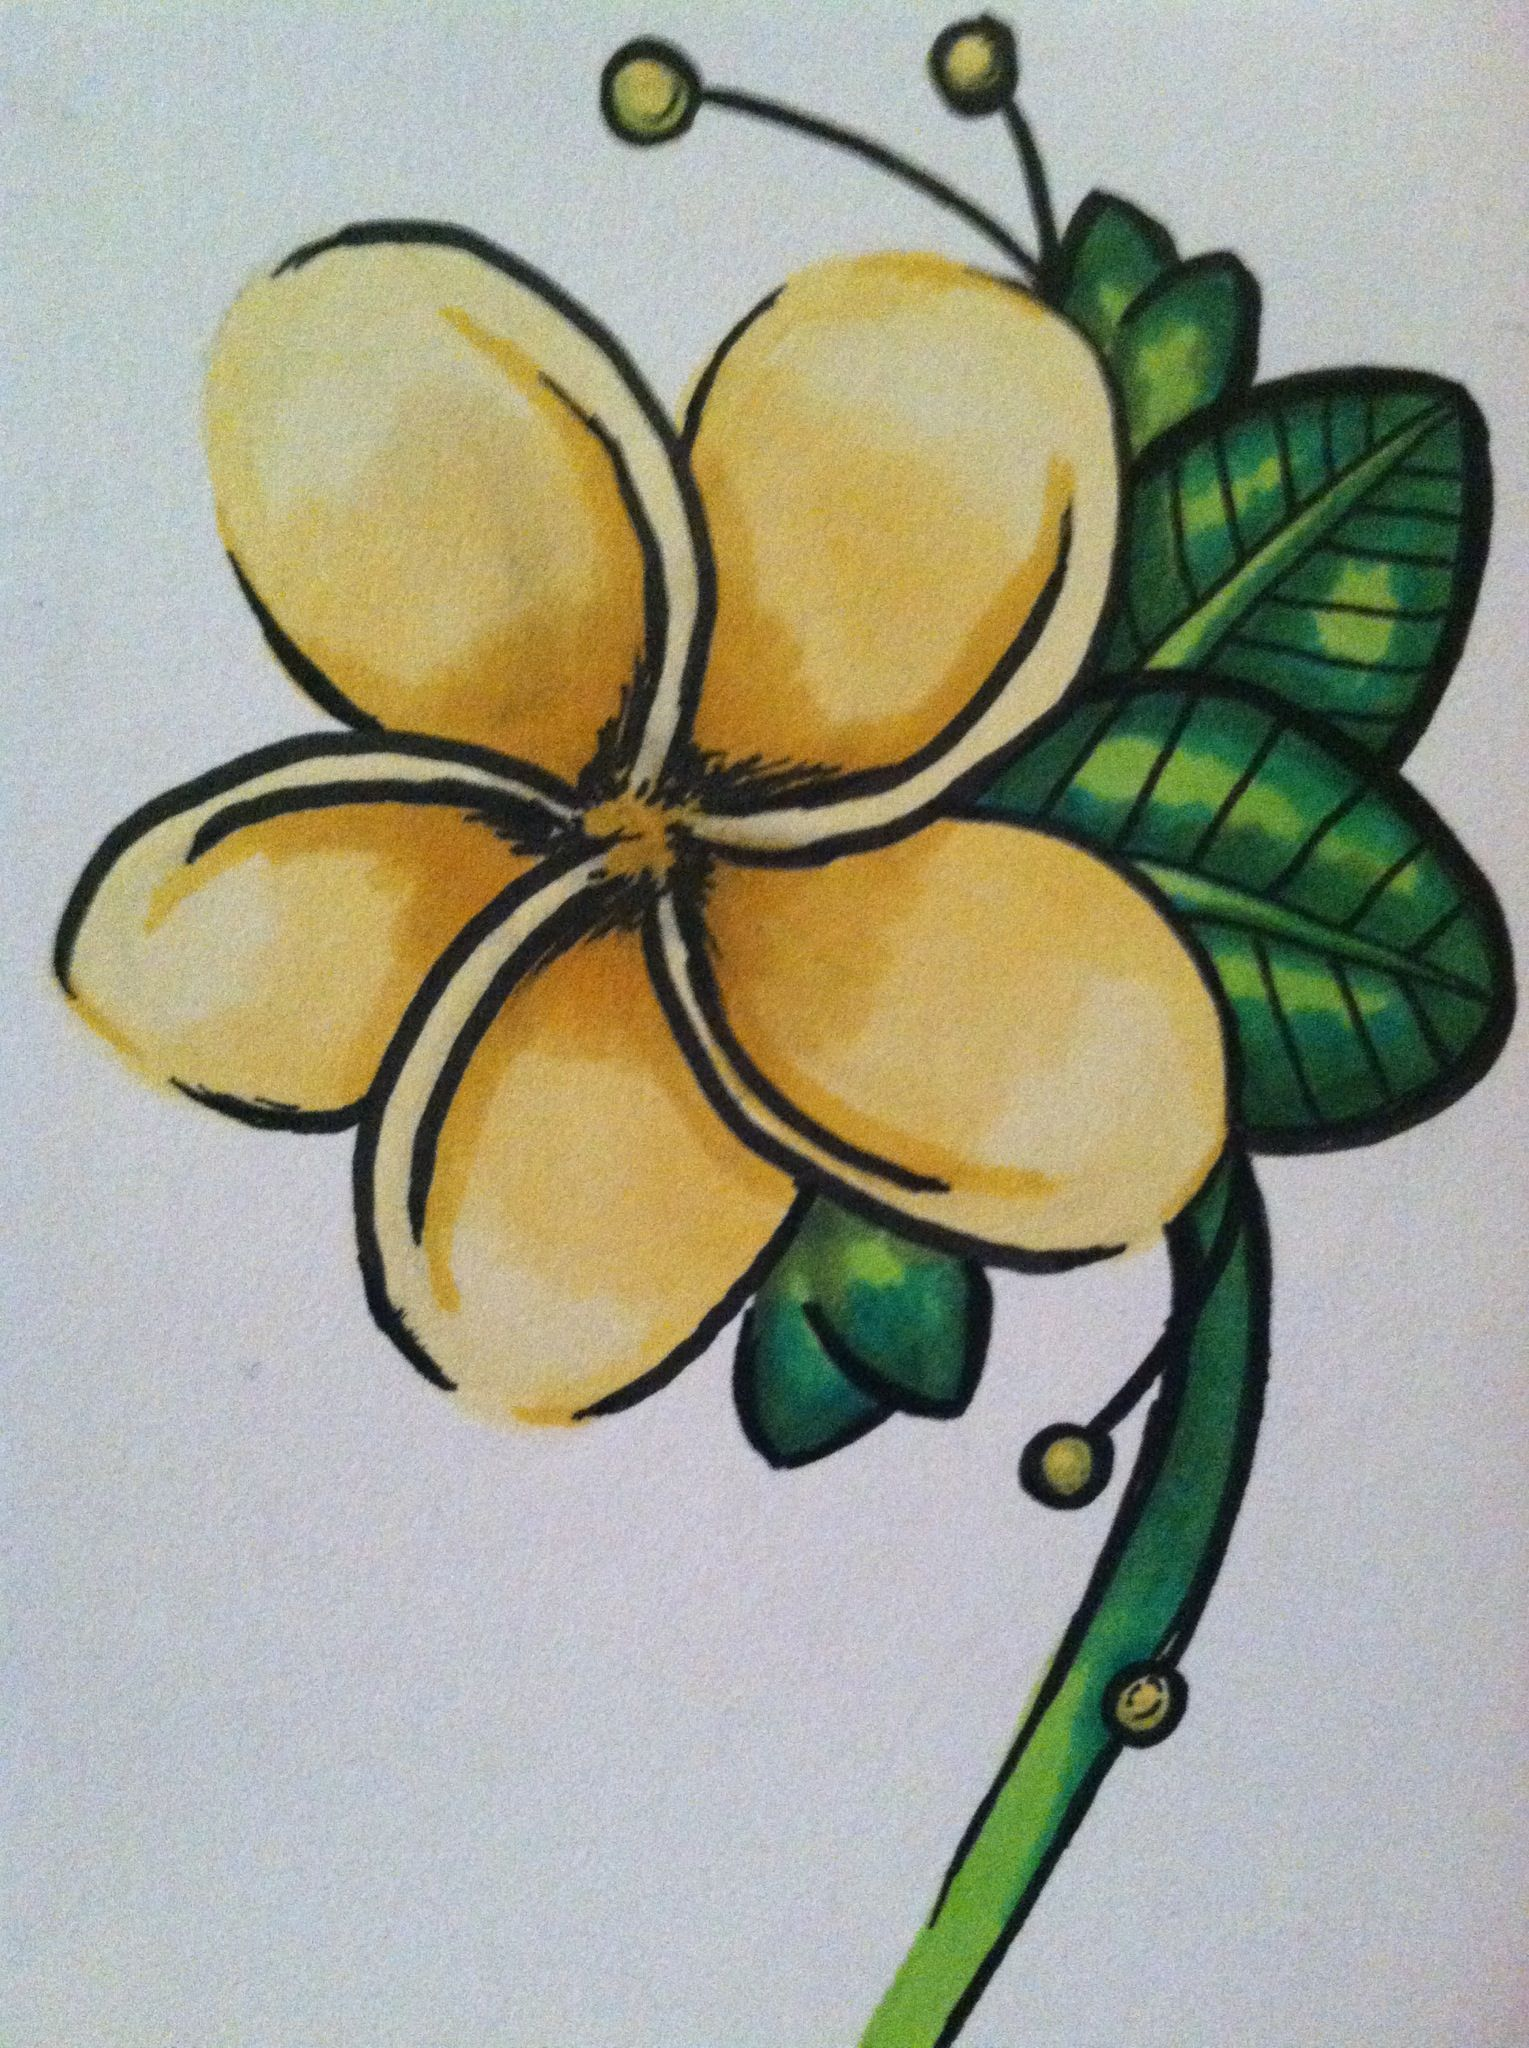 How To Color A Simple Leaves With Prismacolor Markers Recipe In